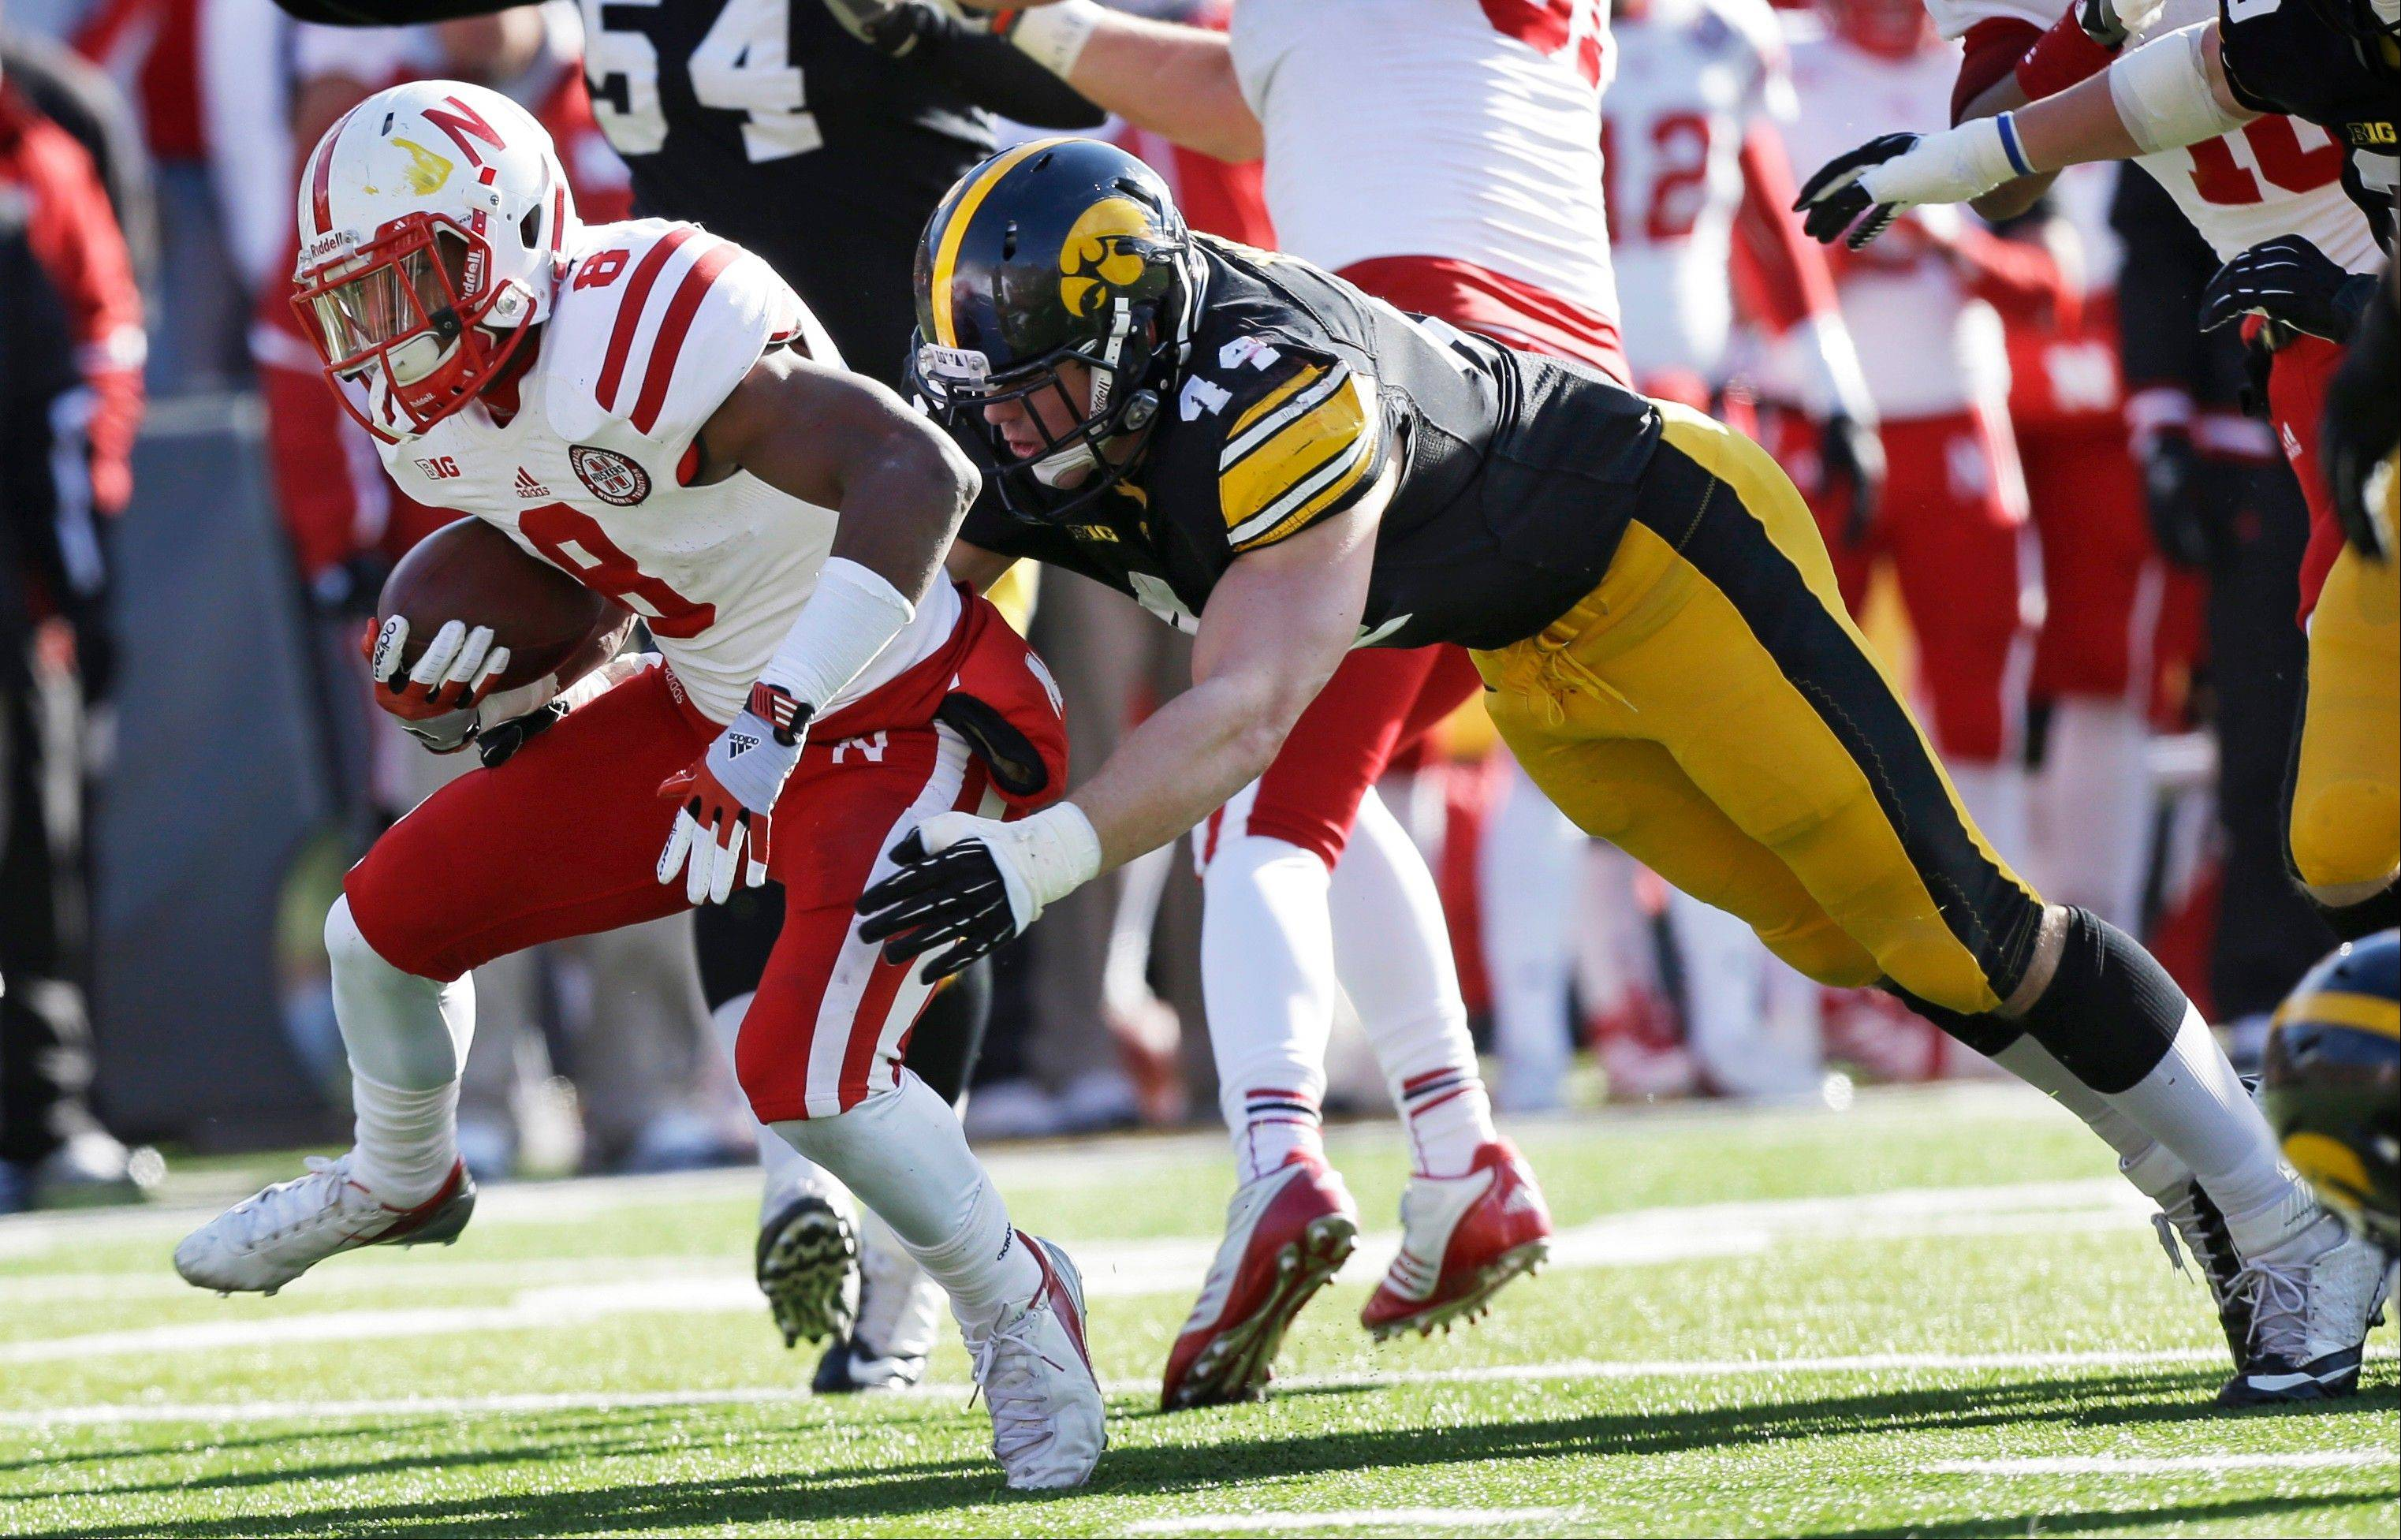 Nebraska running back Ameer Abdullah tries to break a tackle by Iowa linebacker James Morris Friday during the first half in Iowa City. Nebraska beat the Hawkeyes 13-7.